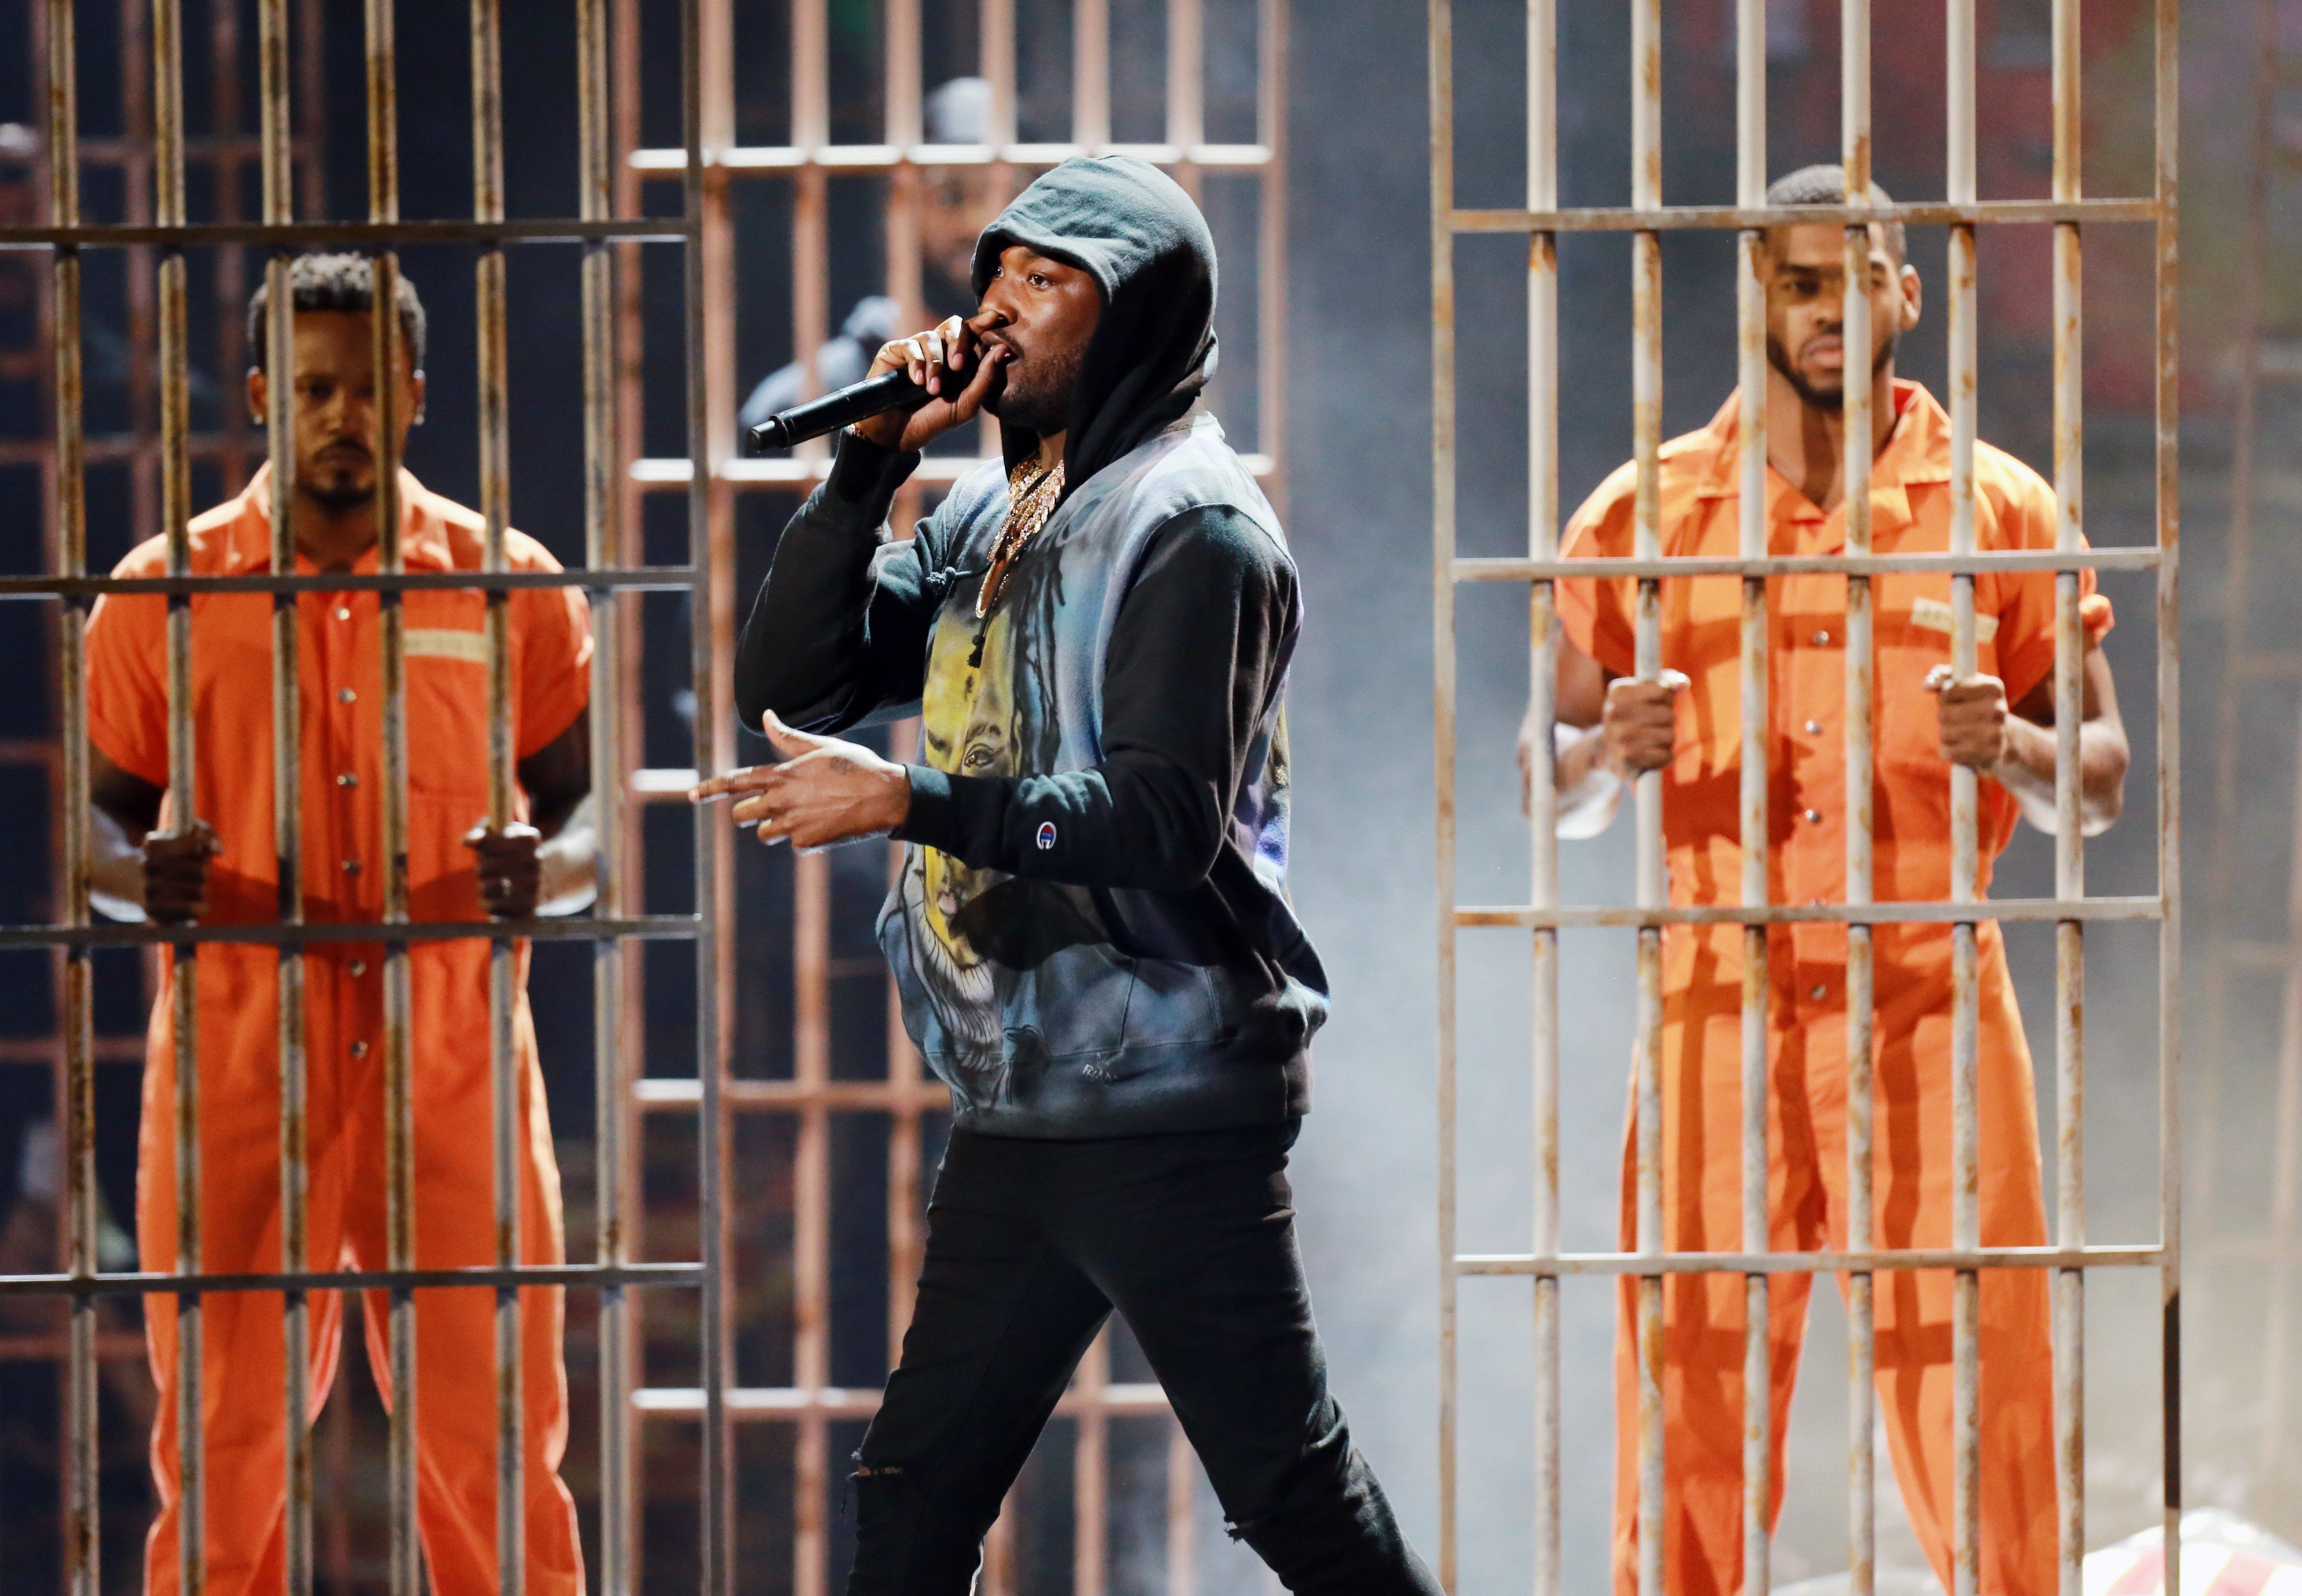 Meek Mill performs at the 2018 BET Awards on Sunday.